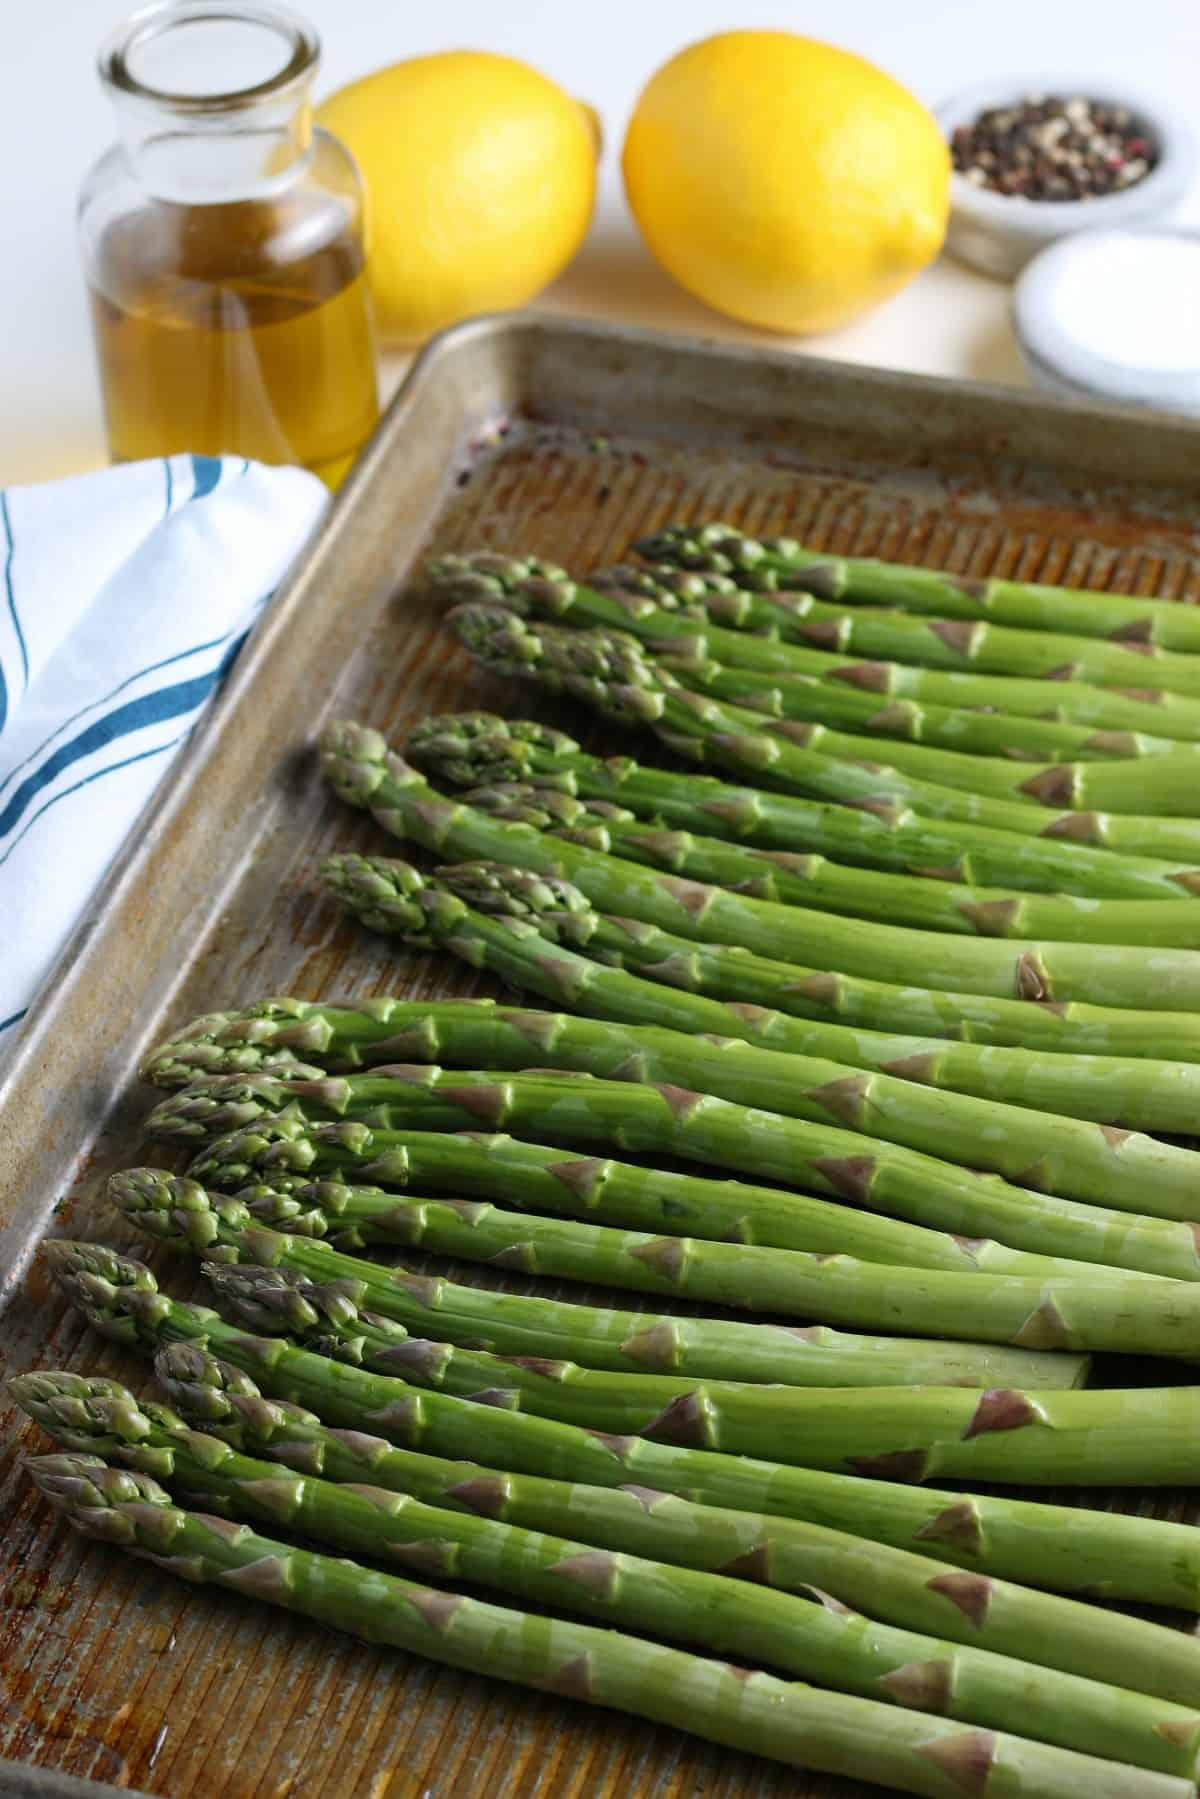 Freah prepared asparagus are laying side by side on a baking sheet to catch all of the runoff of the oil and salt and pepper when tossing.